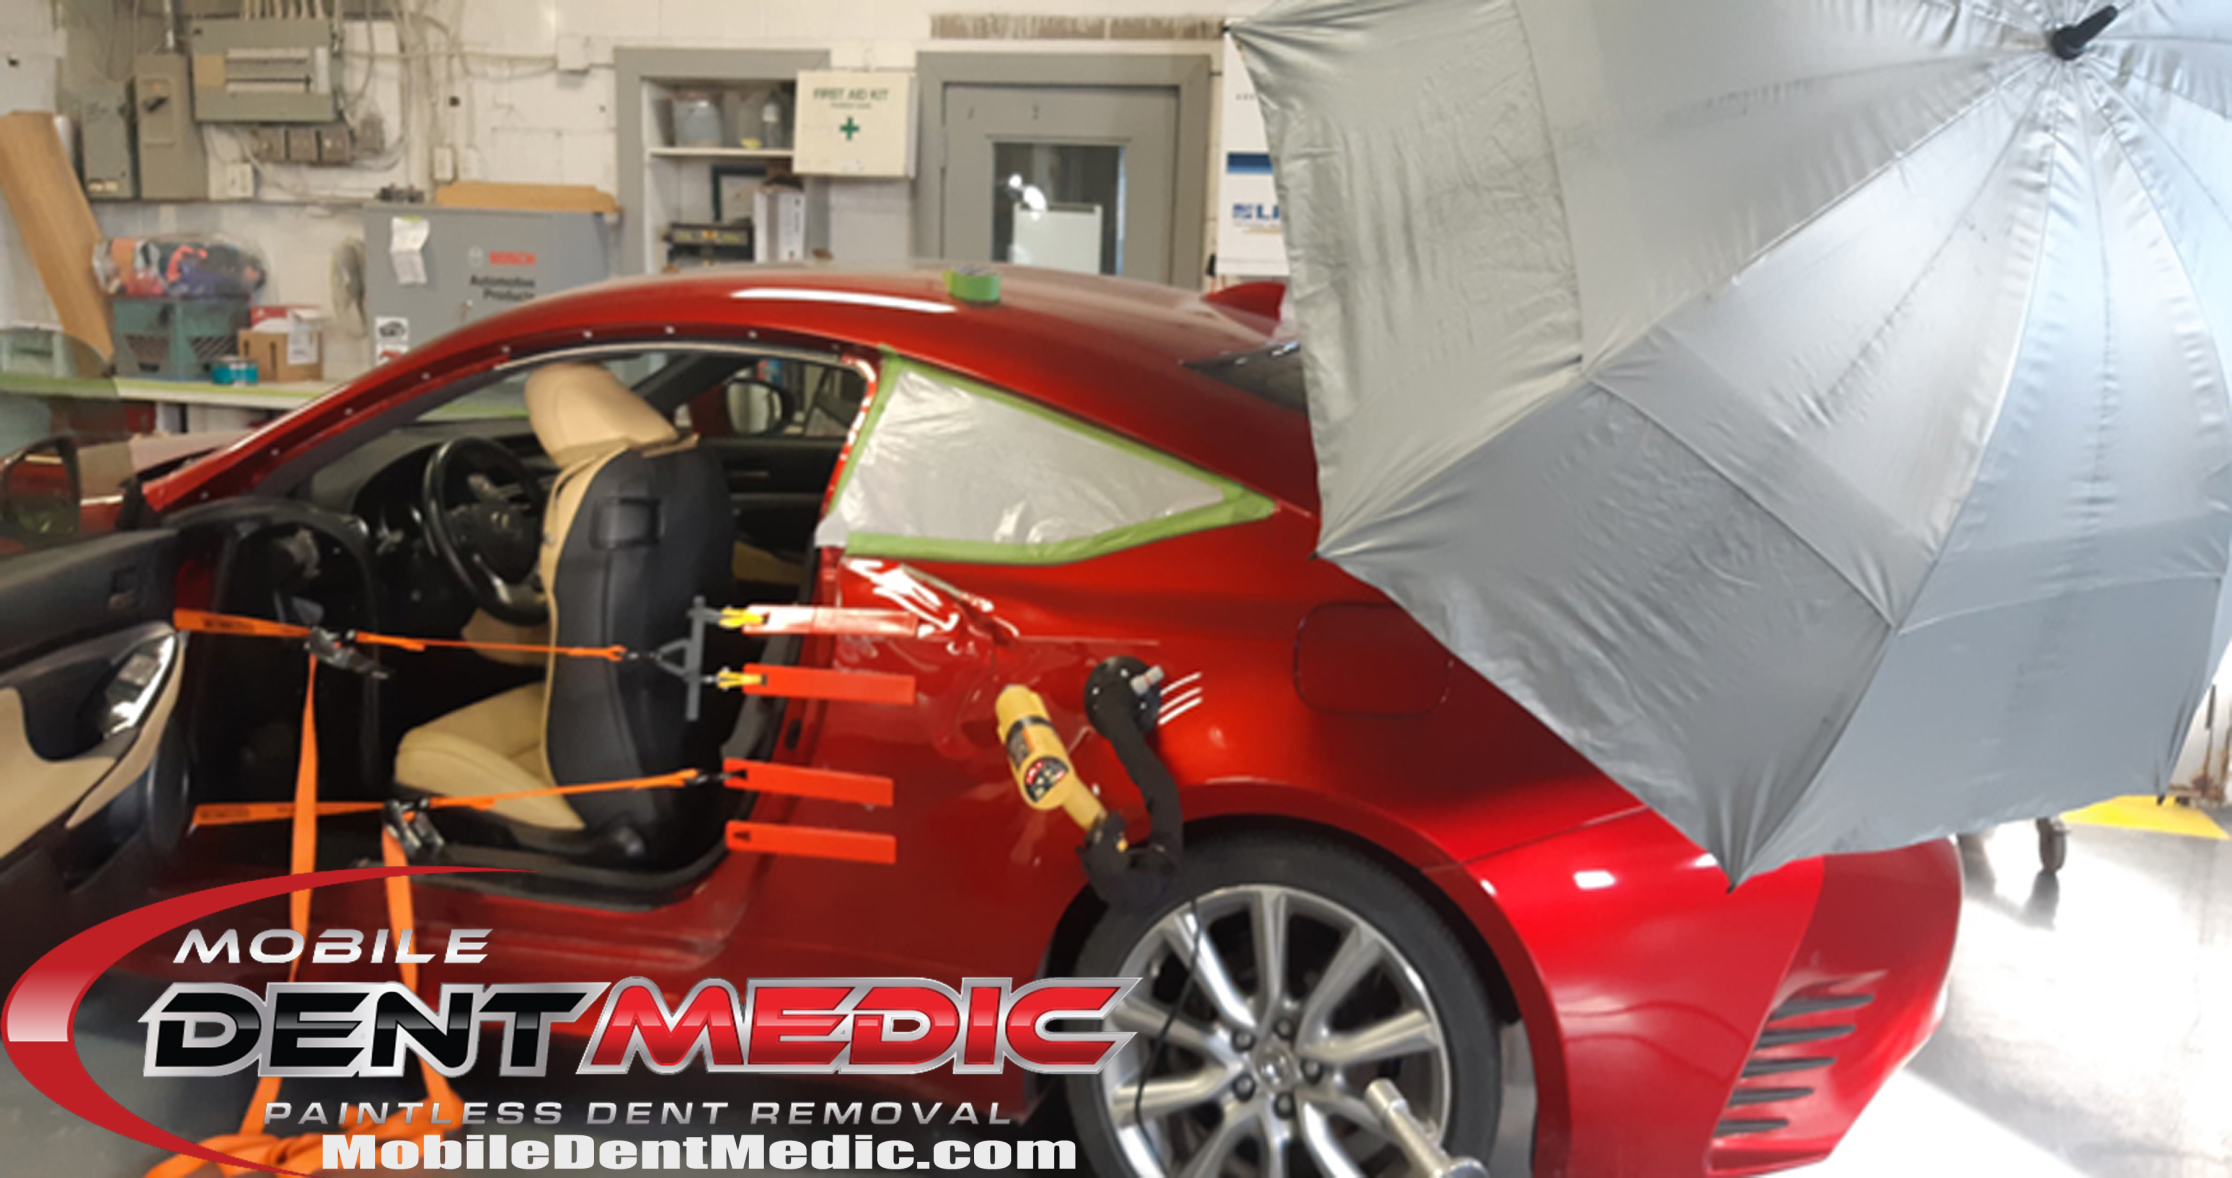 0_1 Do we know the limits to GPR - Glue Pull Repairs | Mobile Dent Medic Paintless Dent Repair